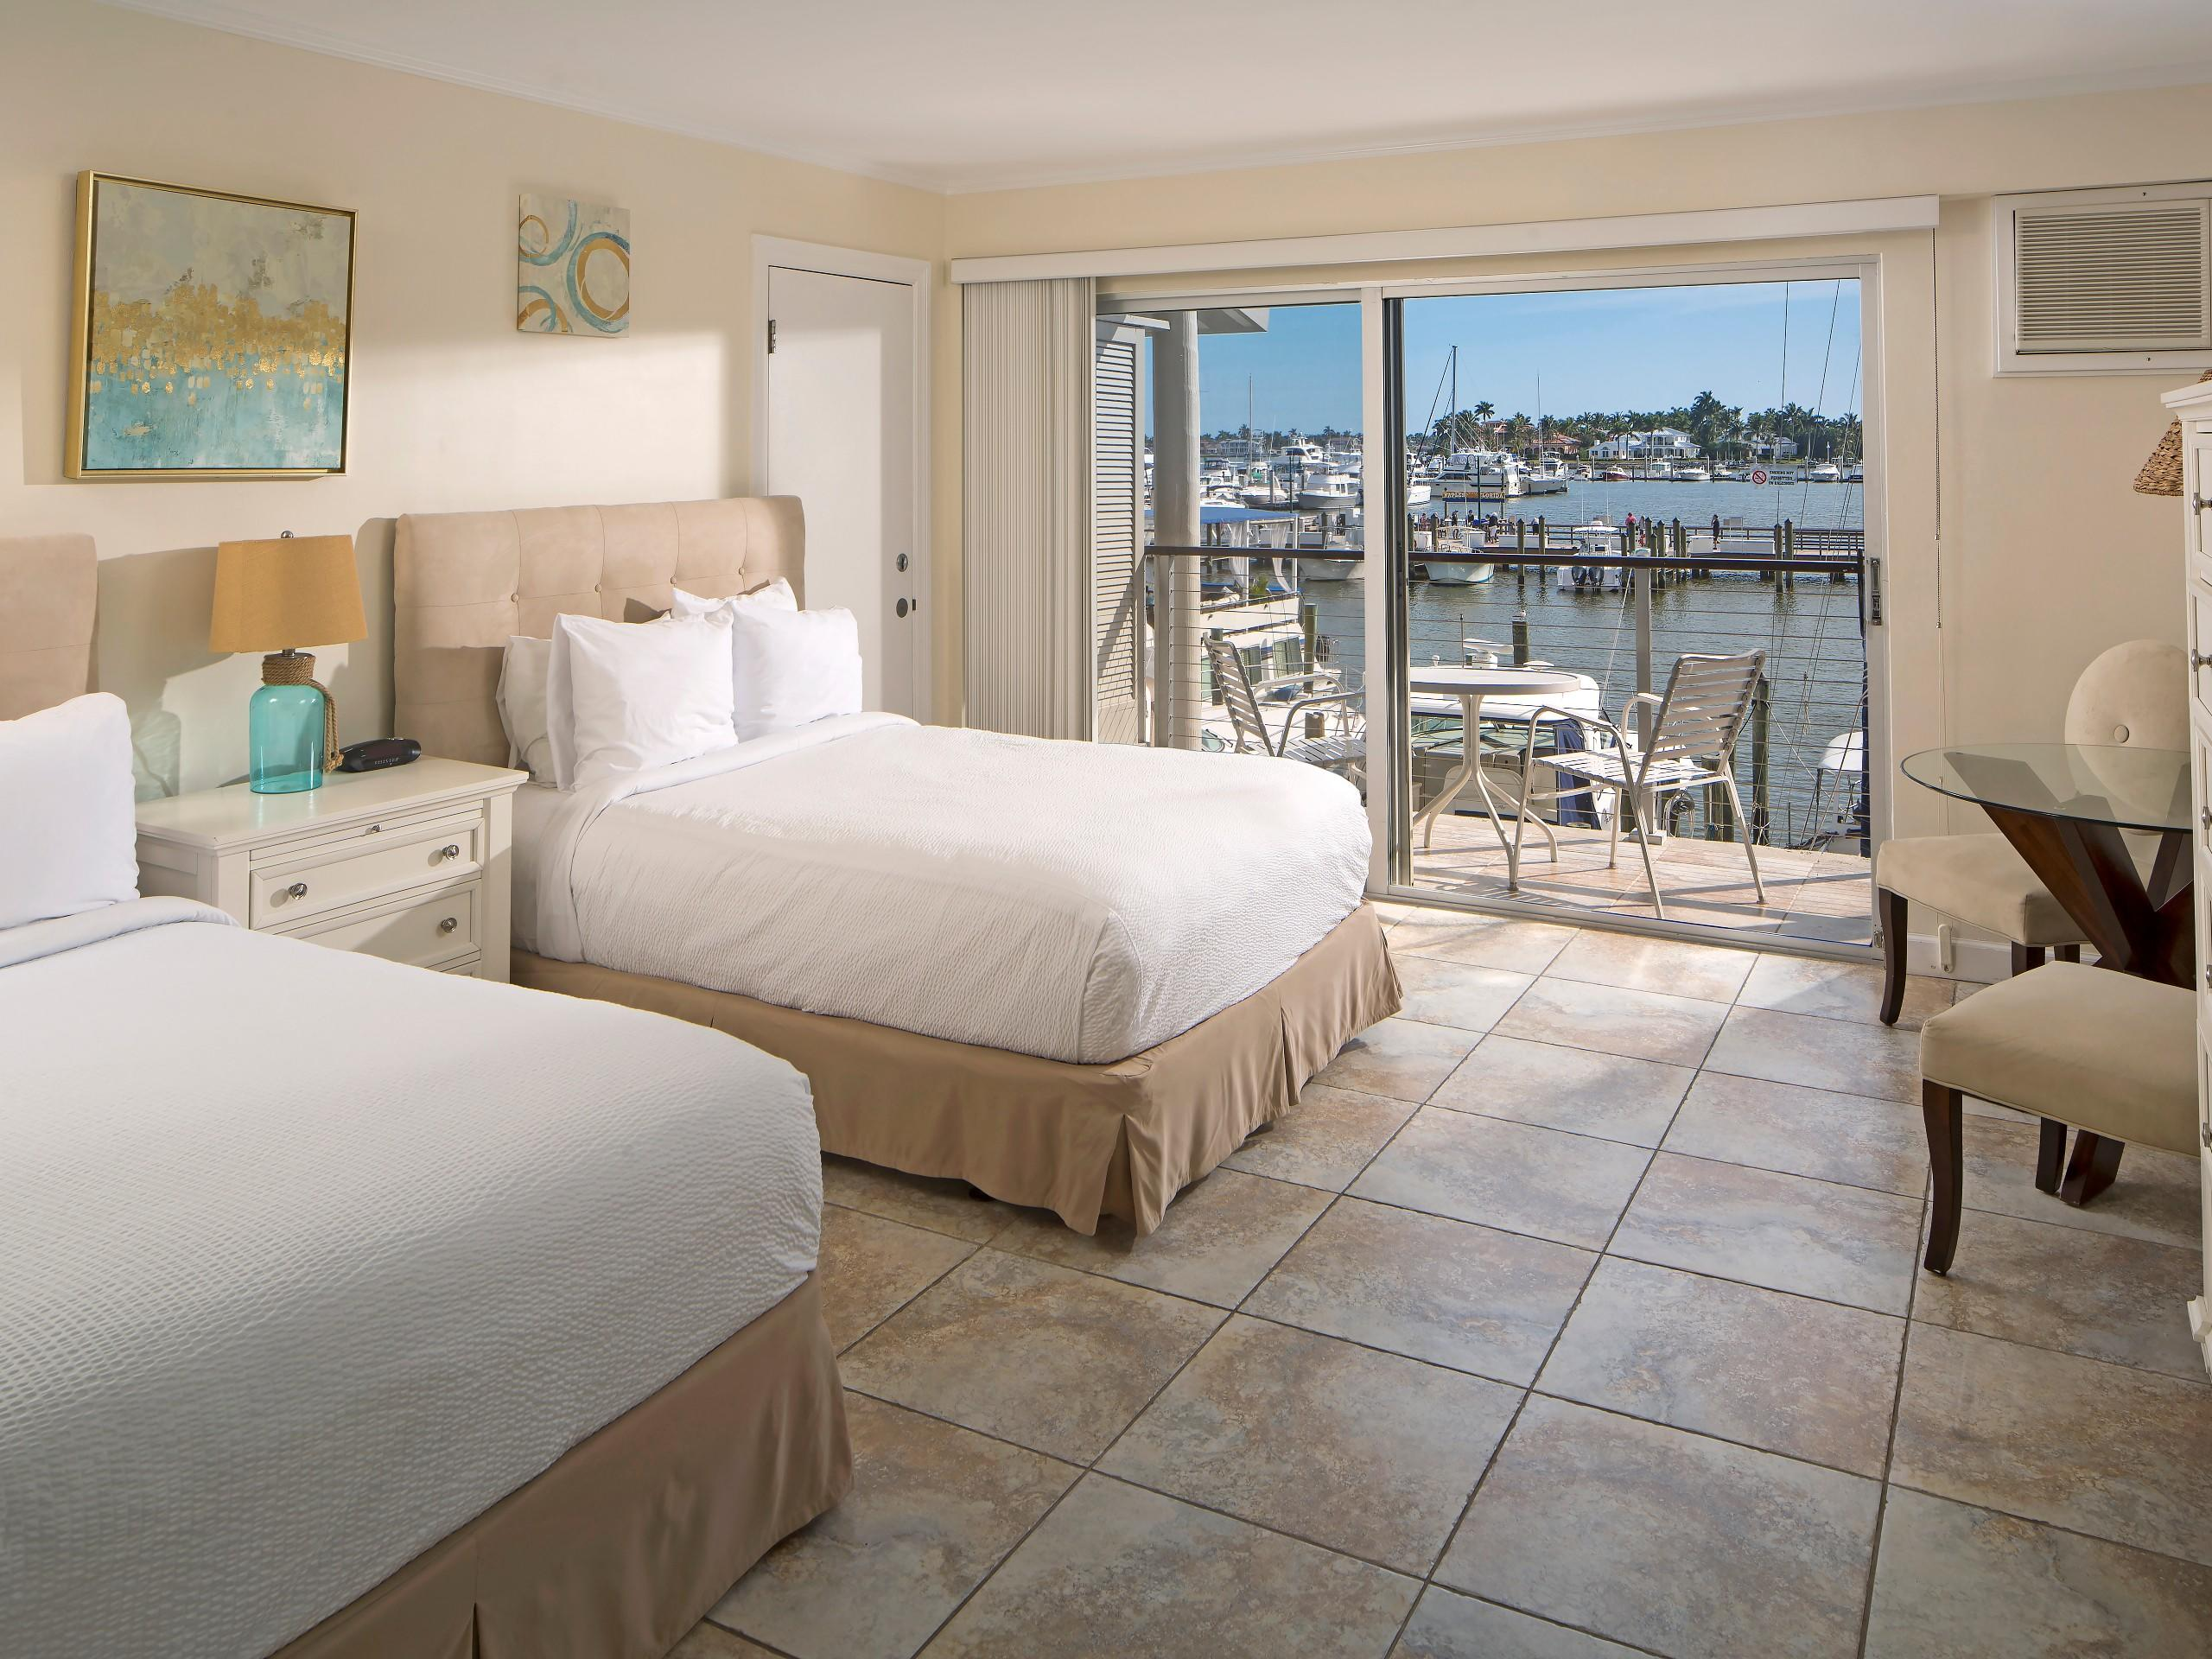 Guest room with two double beds and balcony.